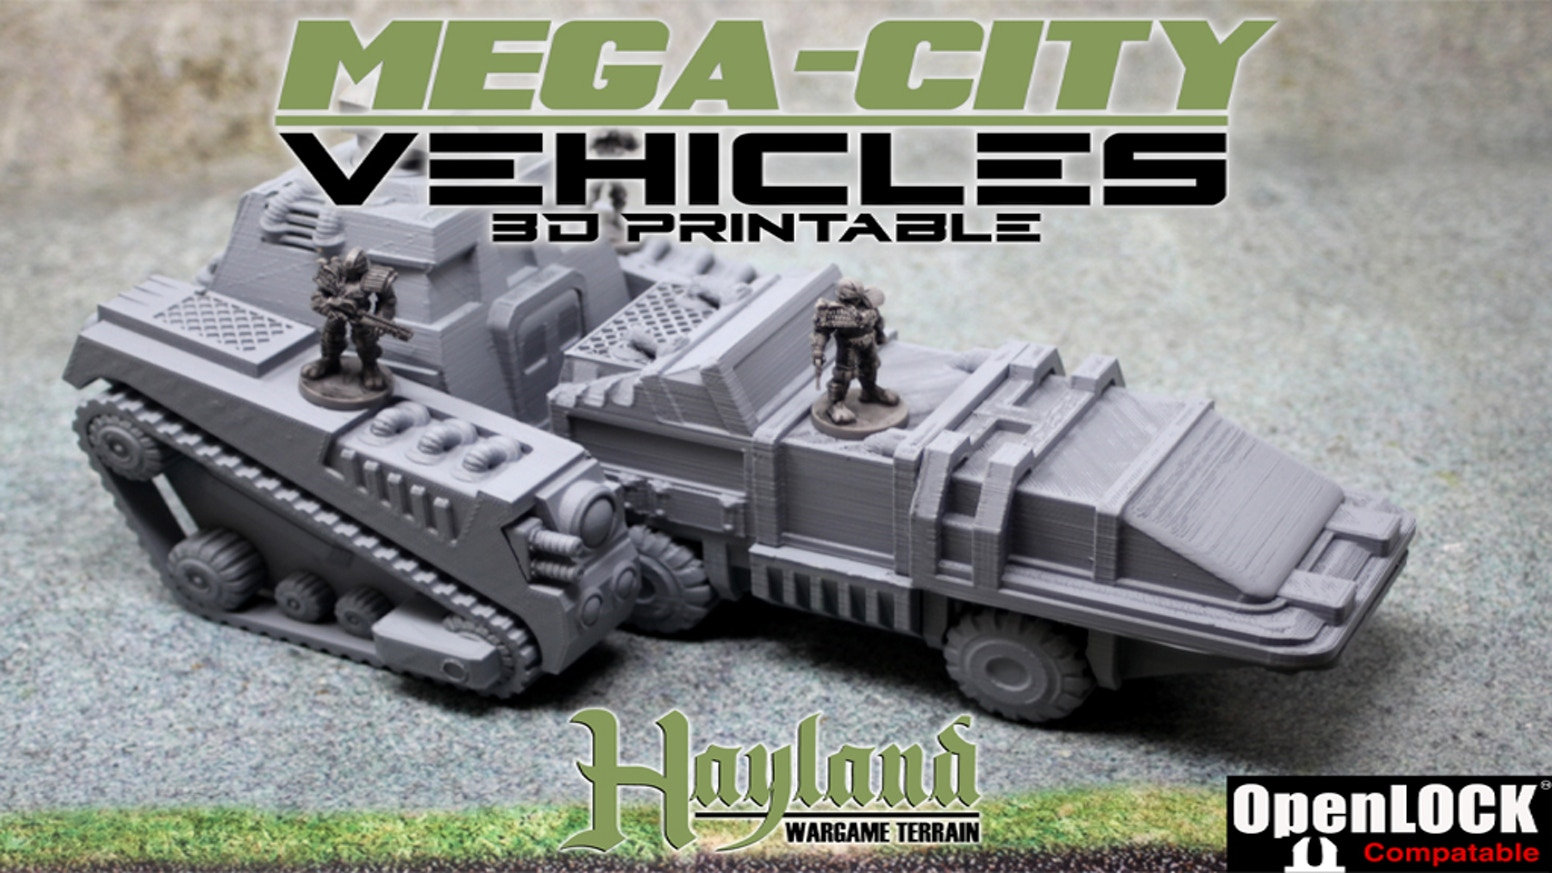 28/32 mm Support-less 3D Printable Sci-fi Vehicles & Accessories - Openlock & Small Print Bed Friendly - 8 Stretch Goals Unlocked!